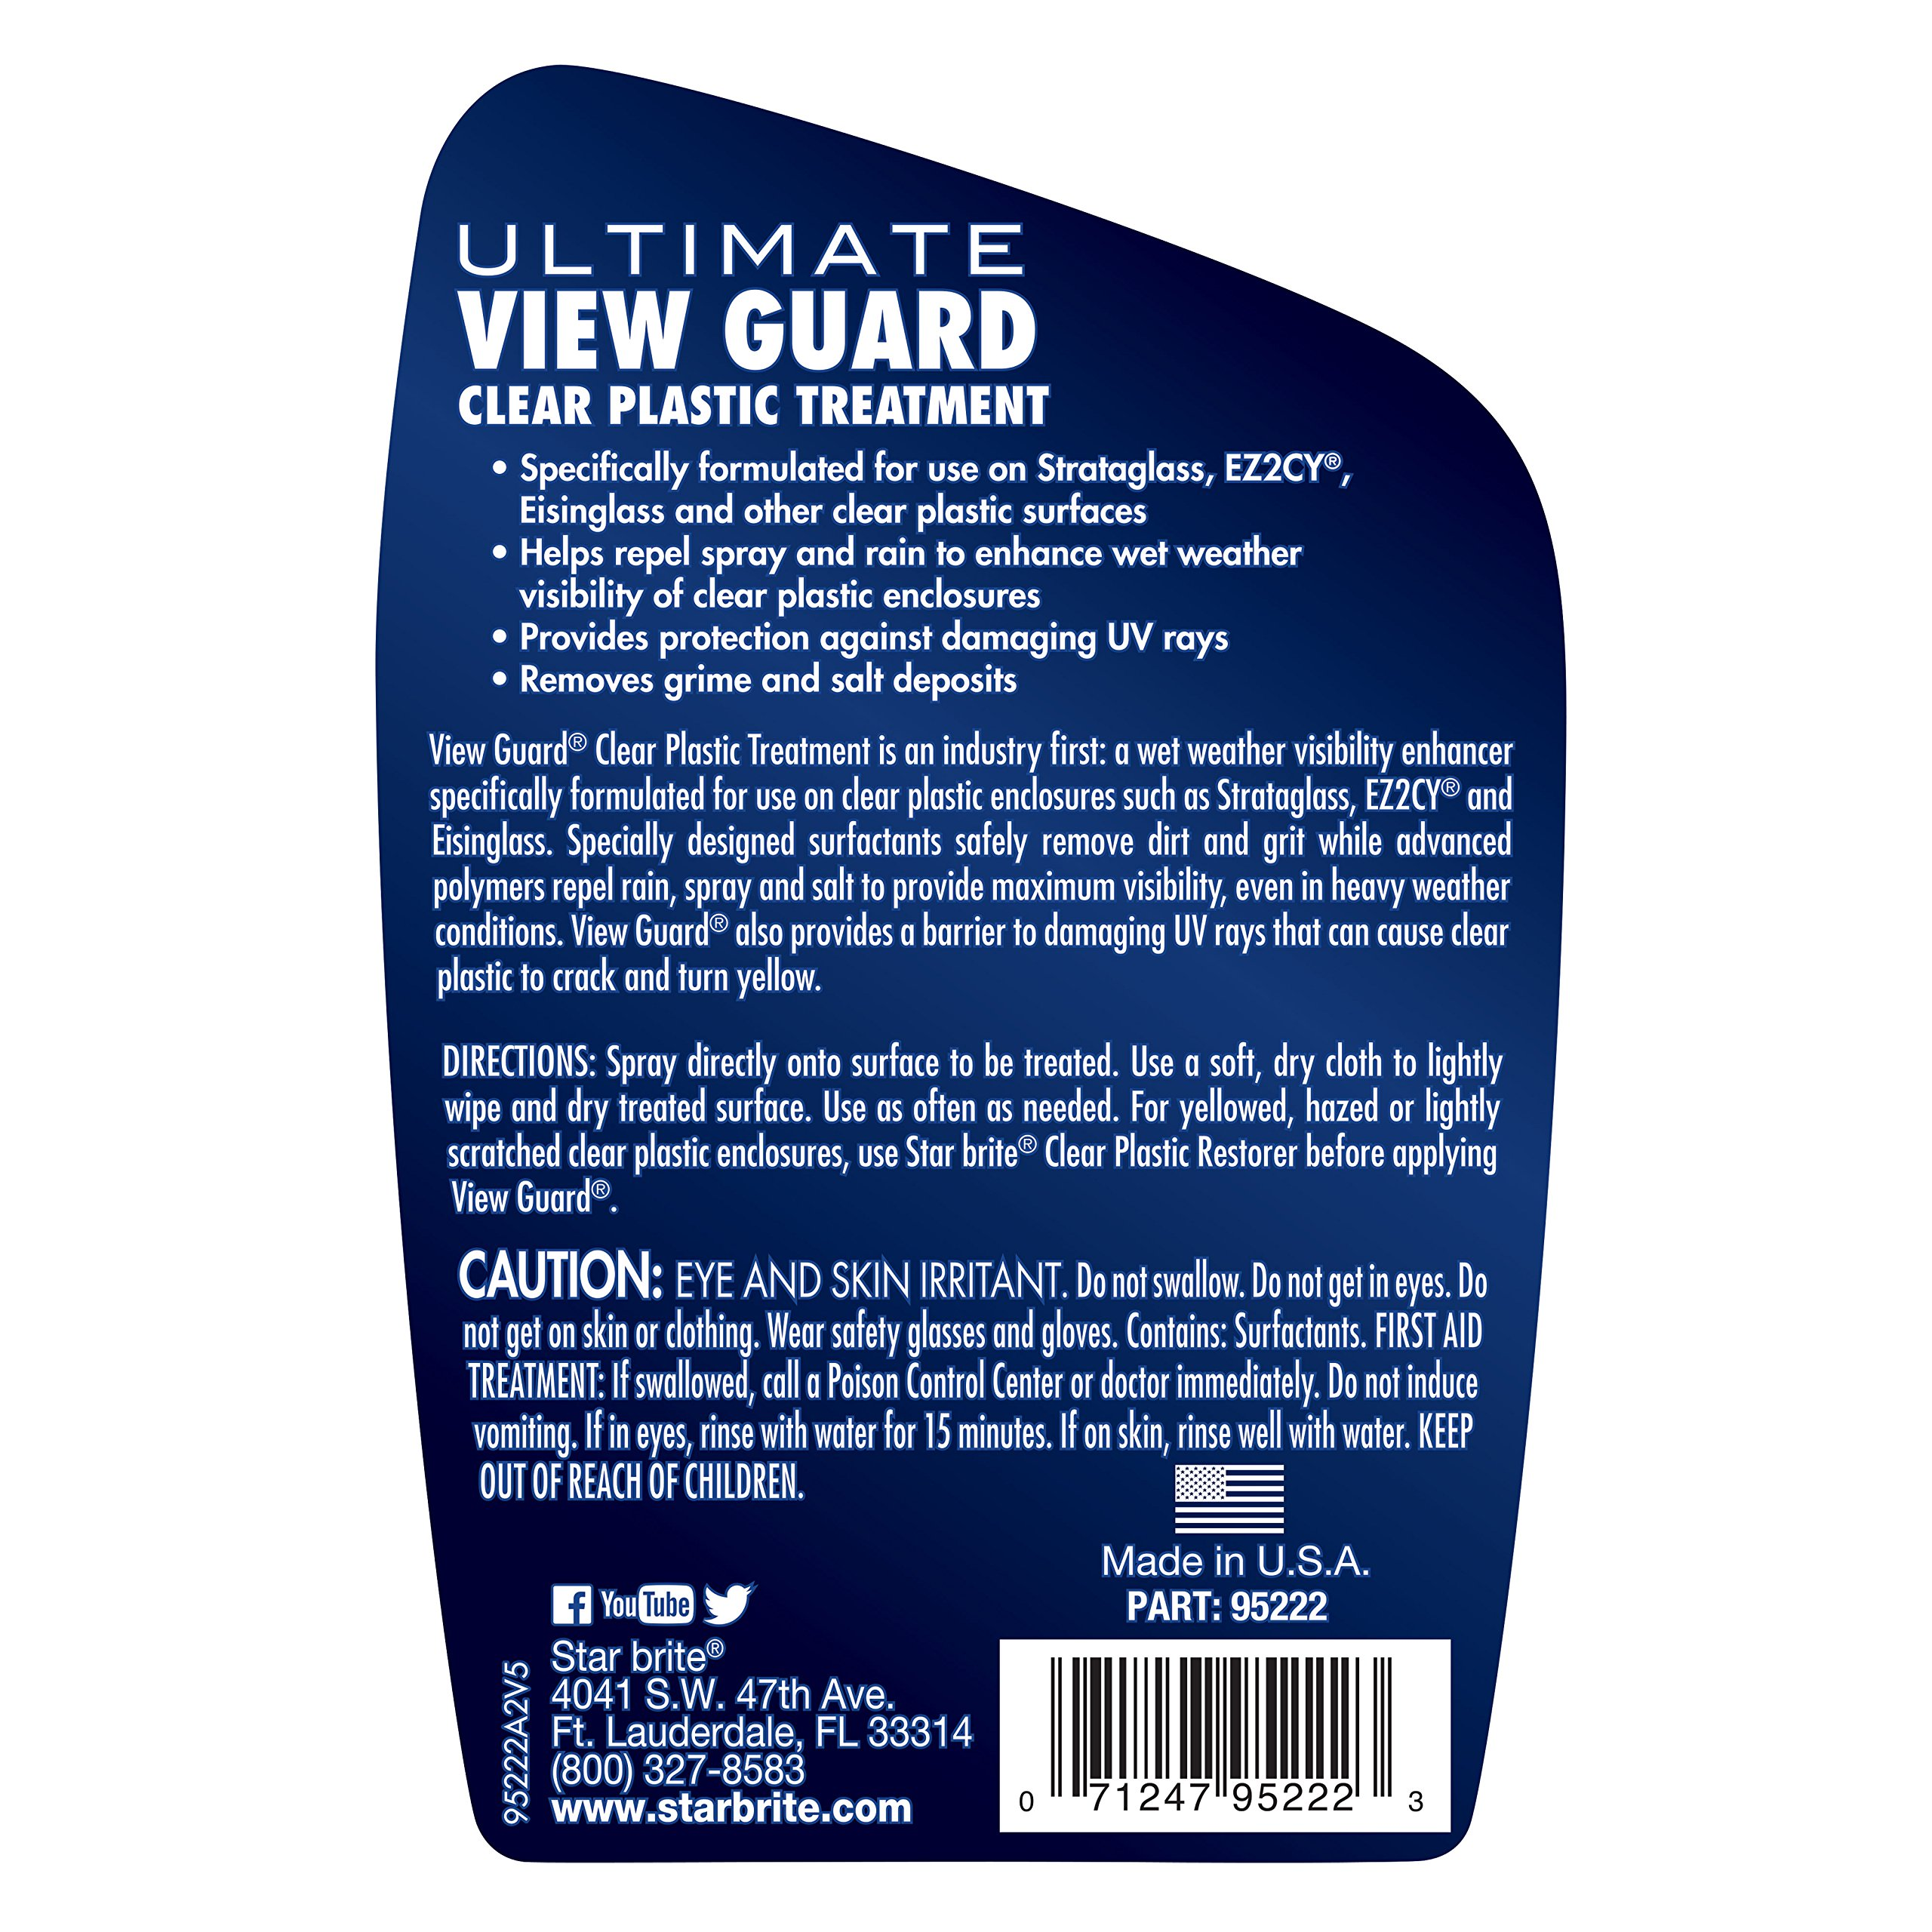 Star brite View Guard Clear Plastic Treatment - 22 oz Spray - Clean & Enhance Wet Weather Visibility for Strataglass, Eisenglass, EZ2CY & Other Clear Plastic by Star Brite (Image #2)